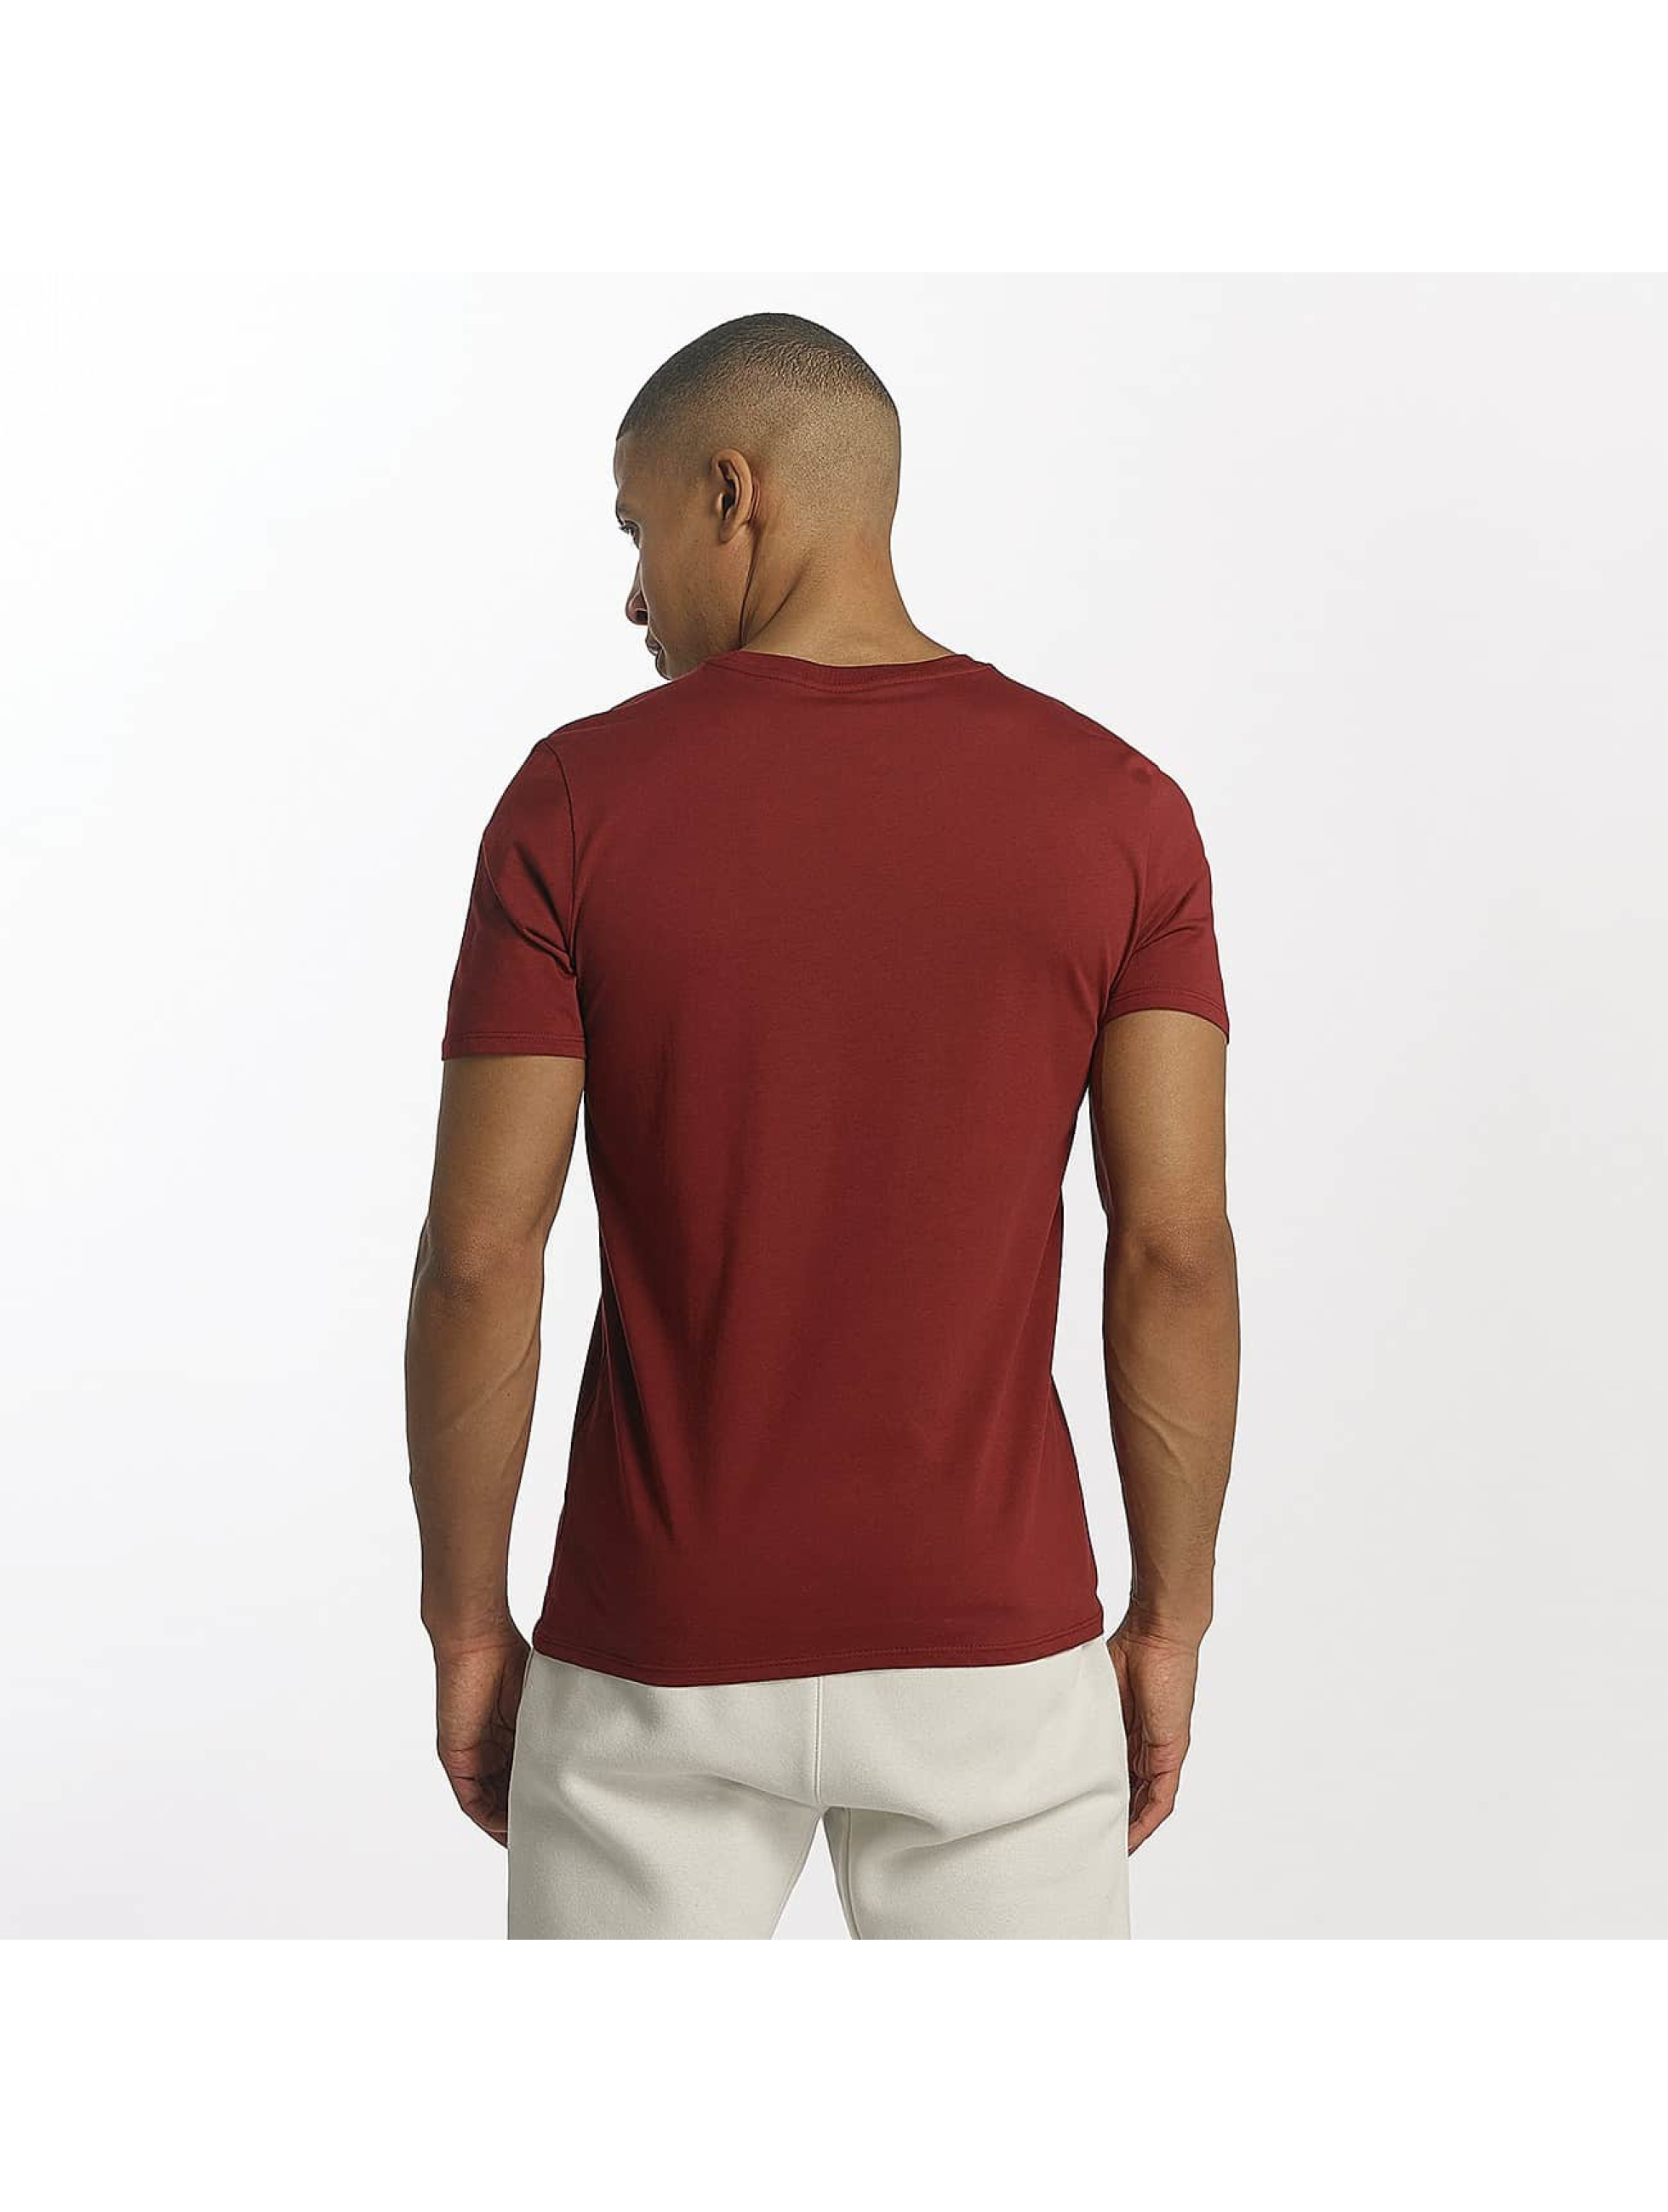 Nike T-Shirt New JDI rot